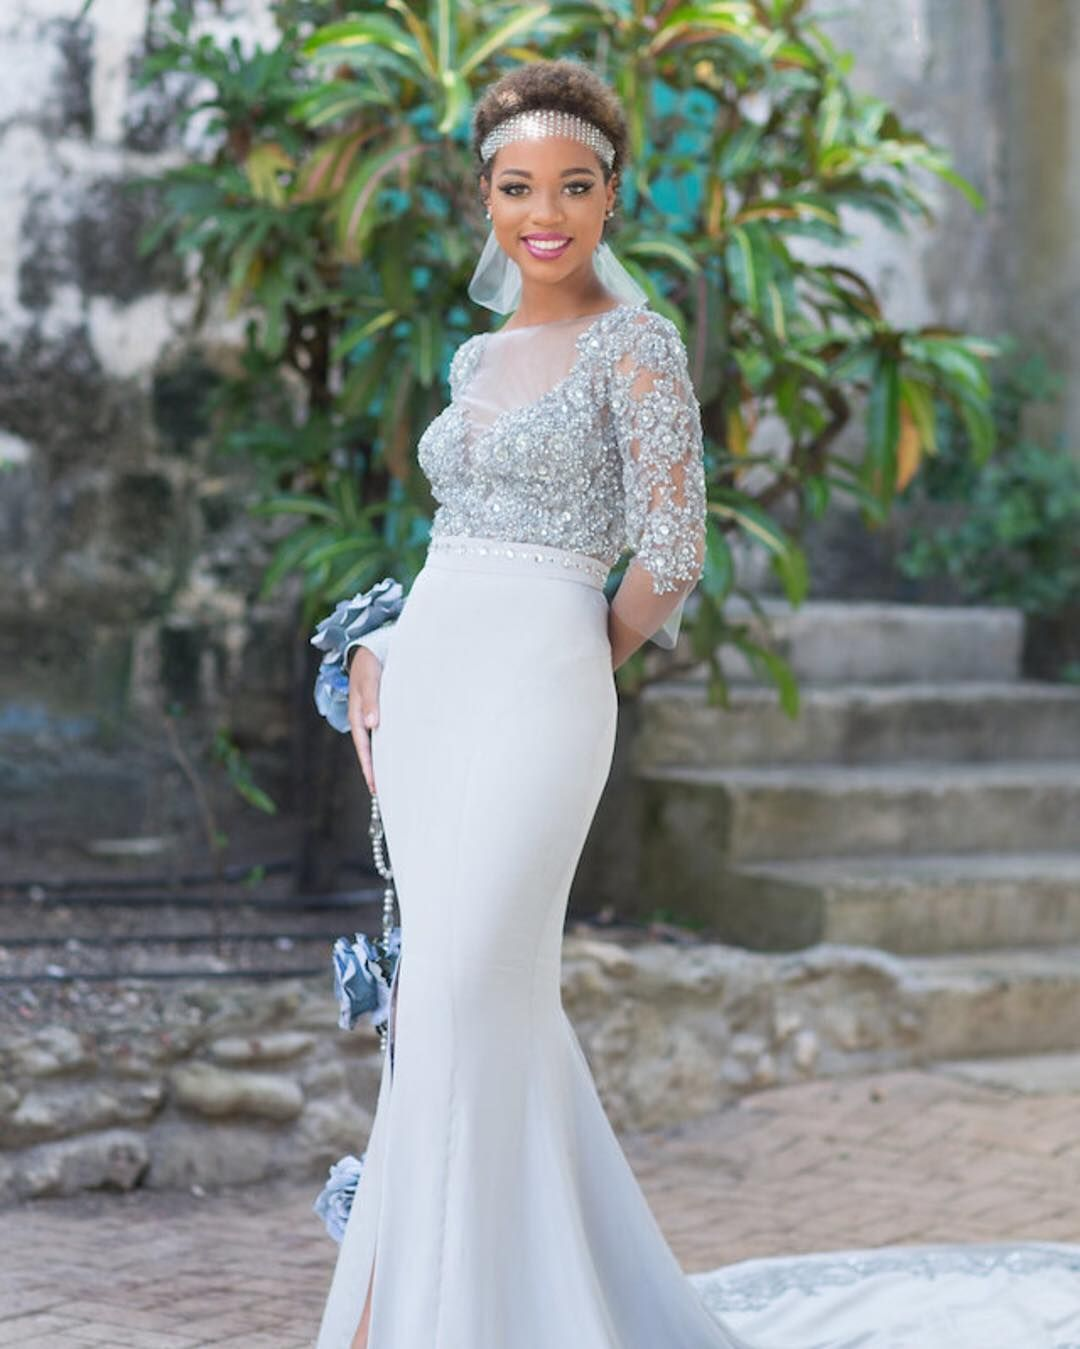 Gray will be a popular color for wedding dresses this year loving